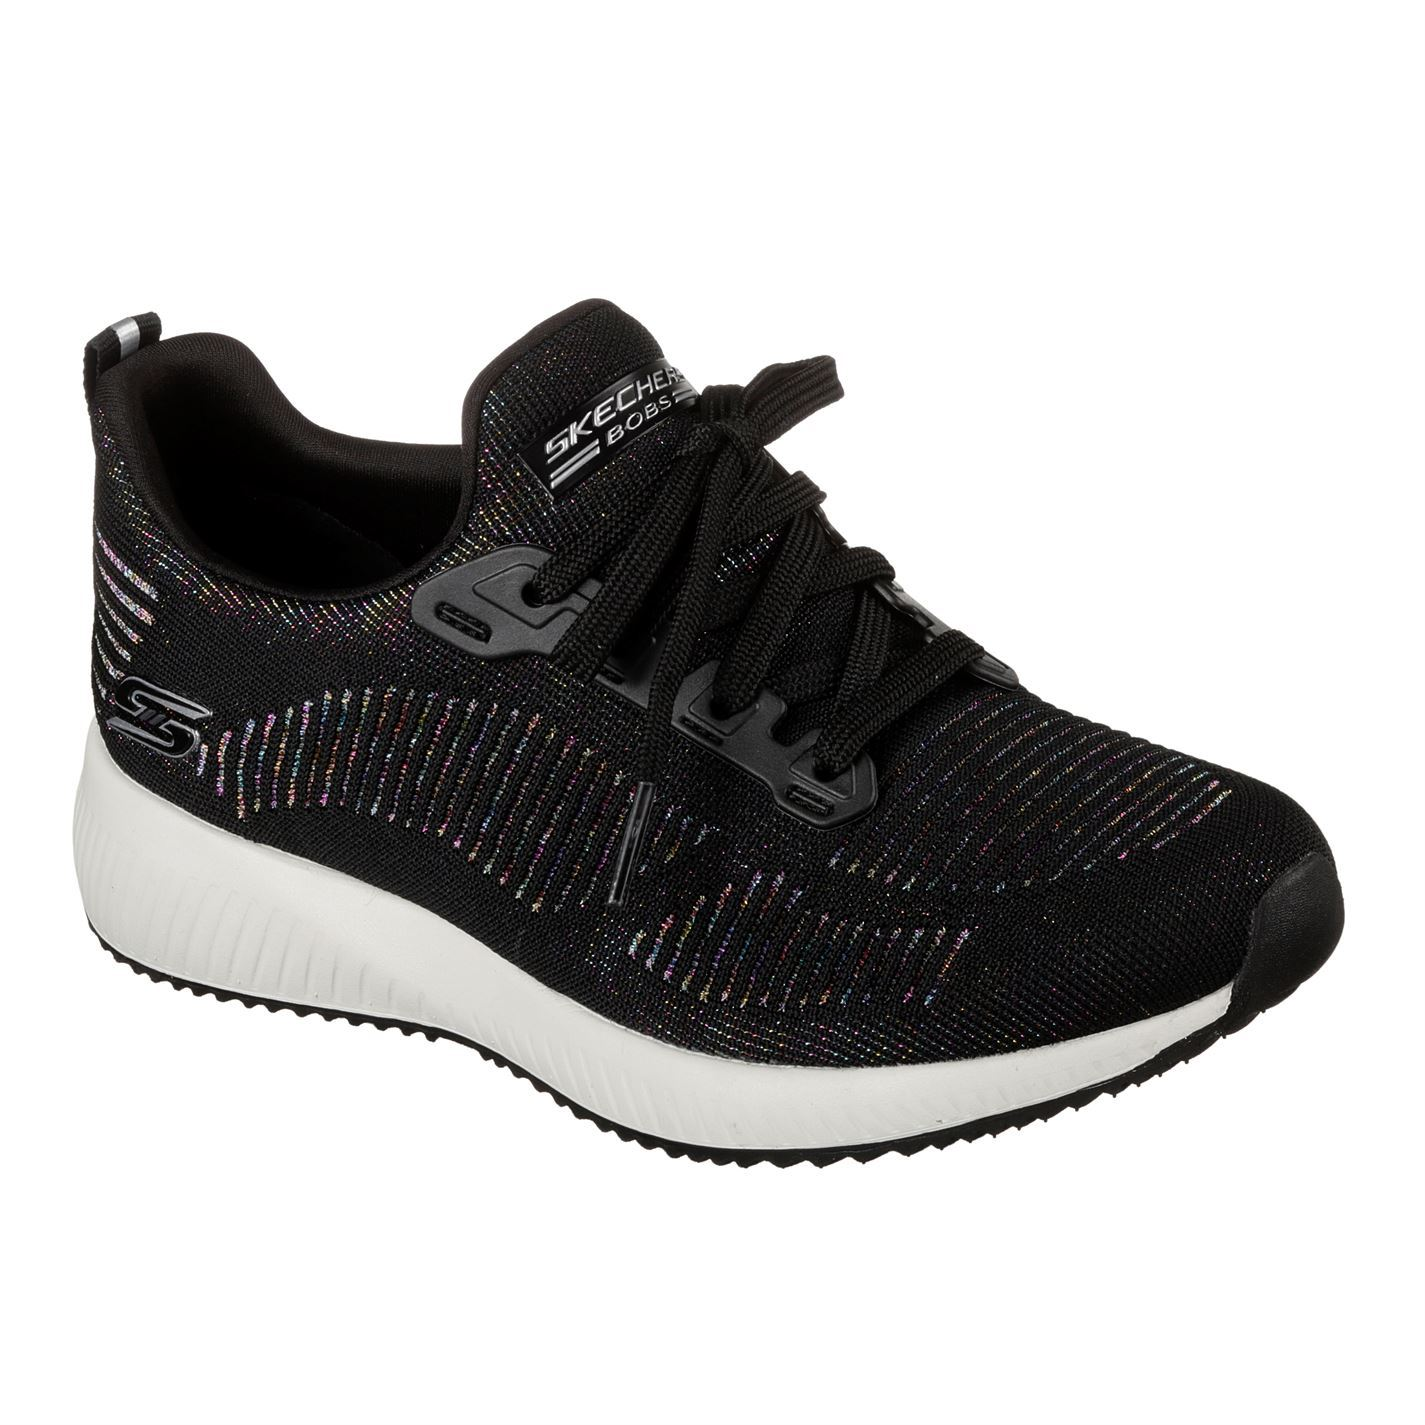 Details about Skechers Bobs Sport Squad Metallic Trainers Ladies Shoes Womens Footwear